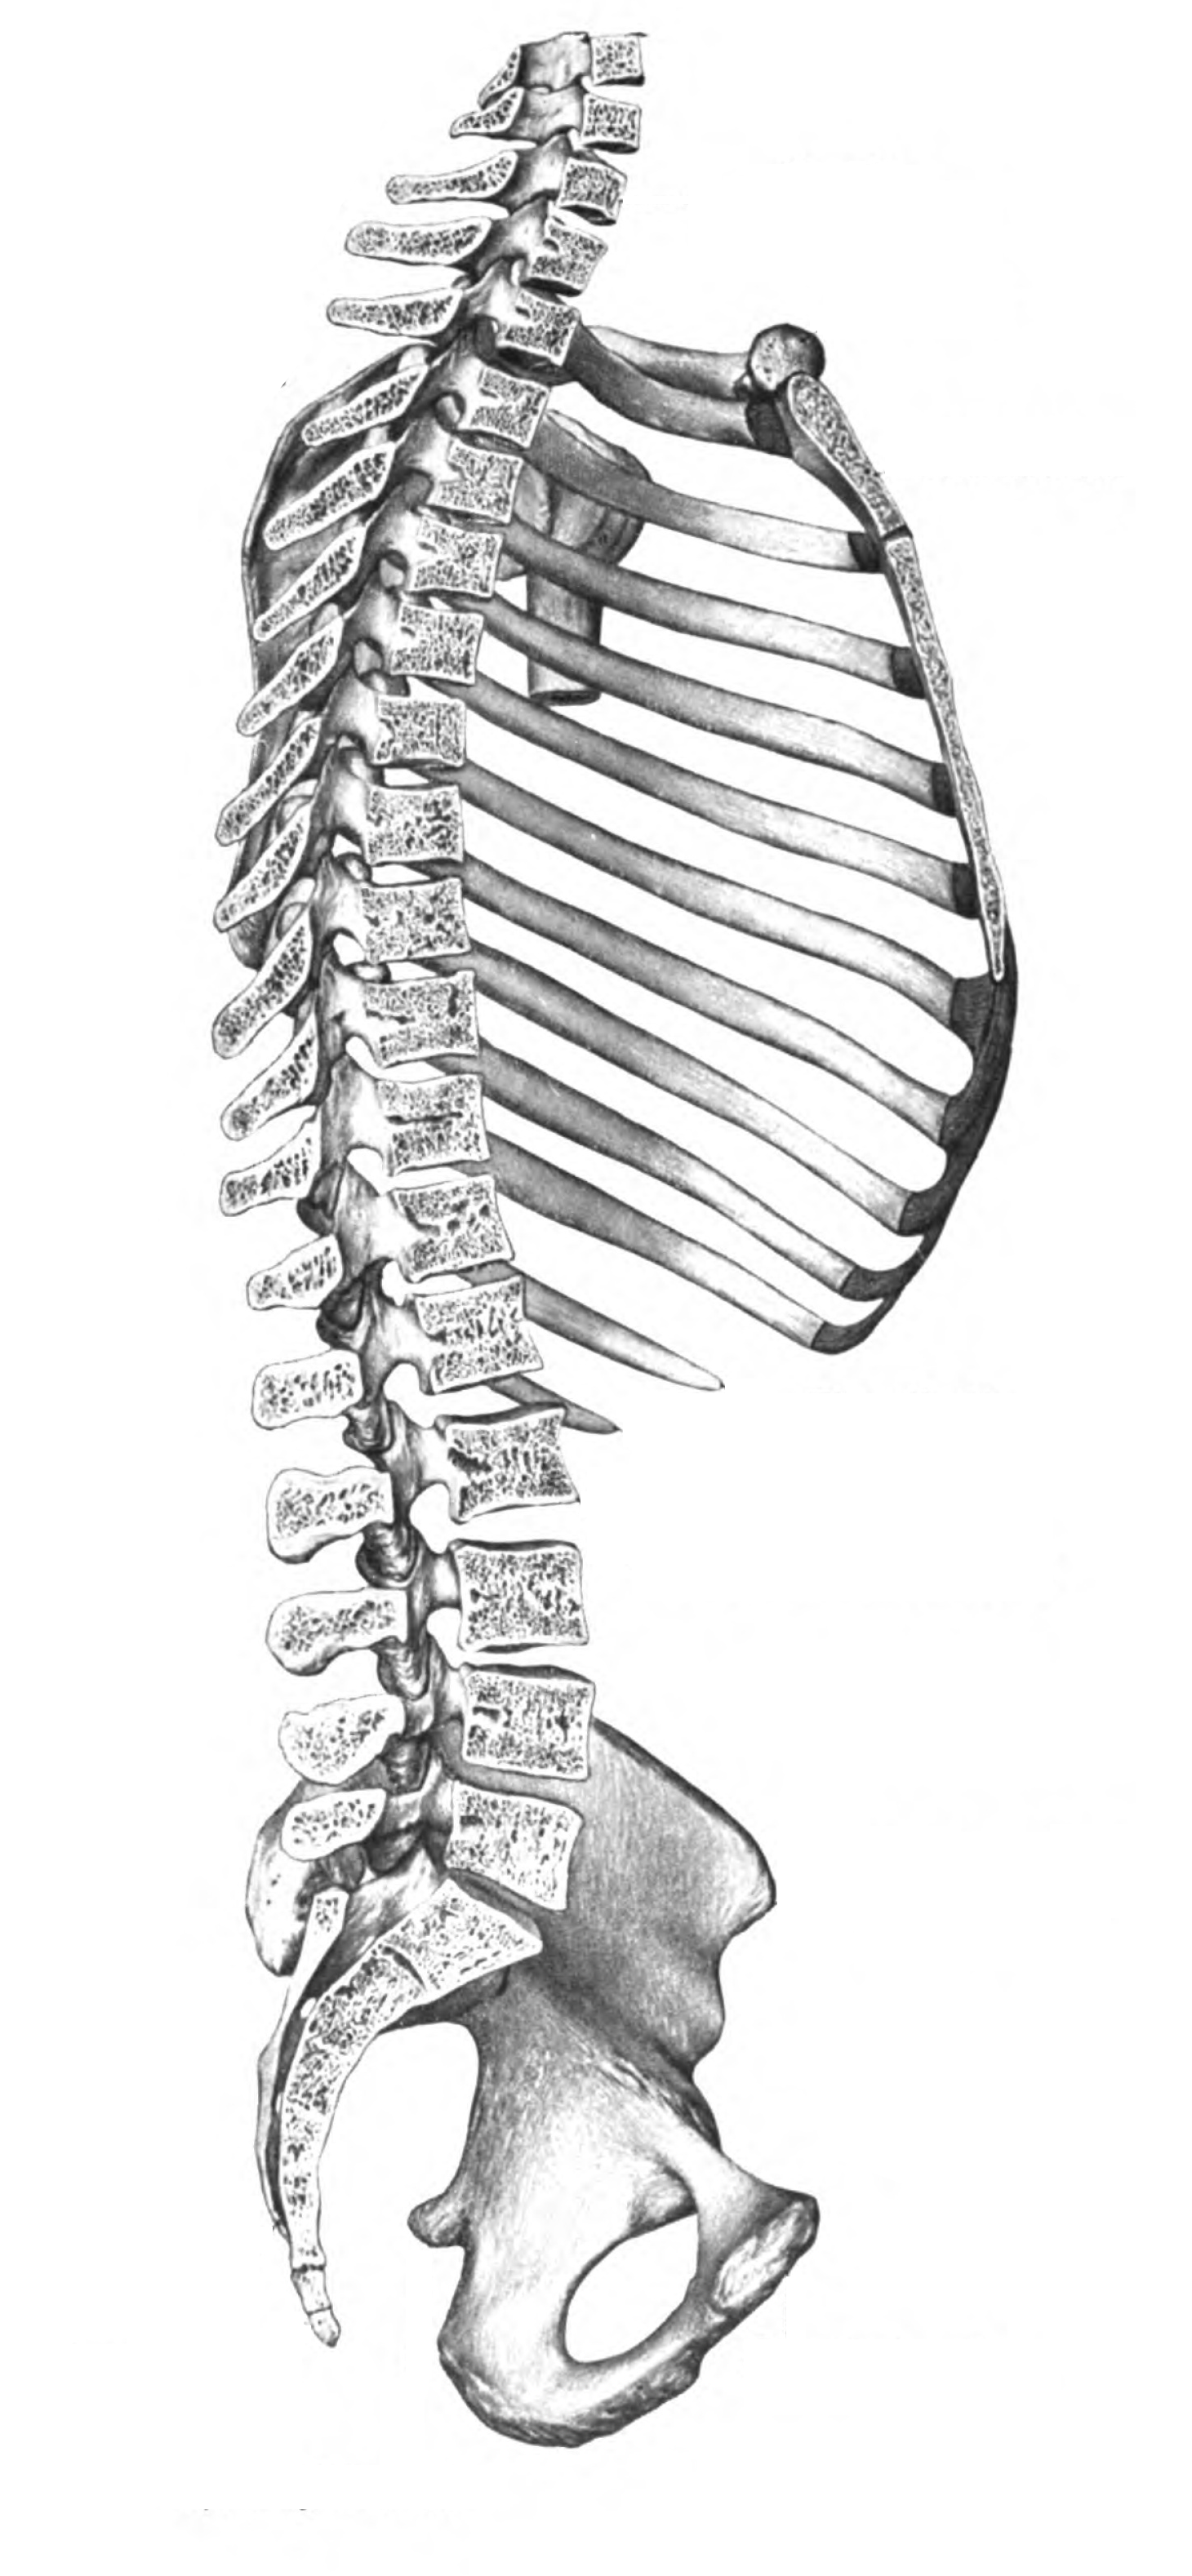 We have just added a sub page detailing dislocated vertebrae ...